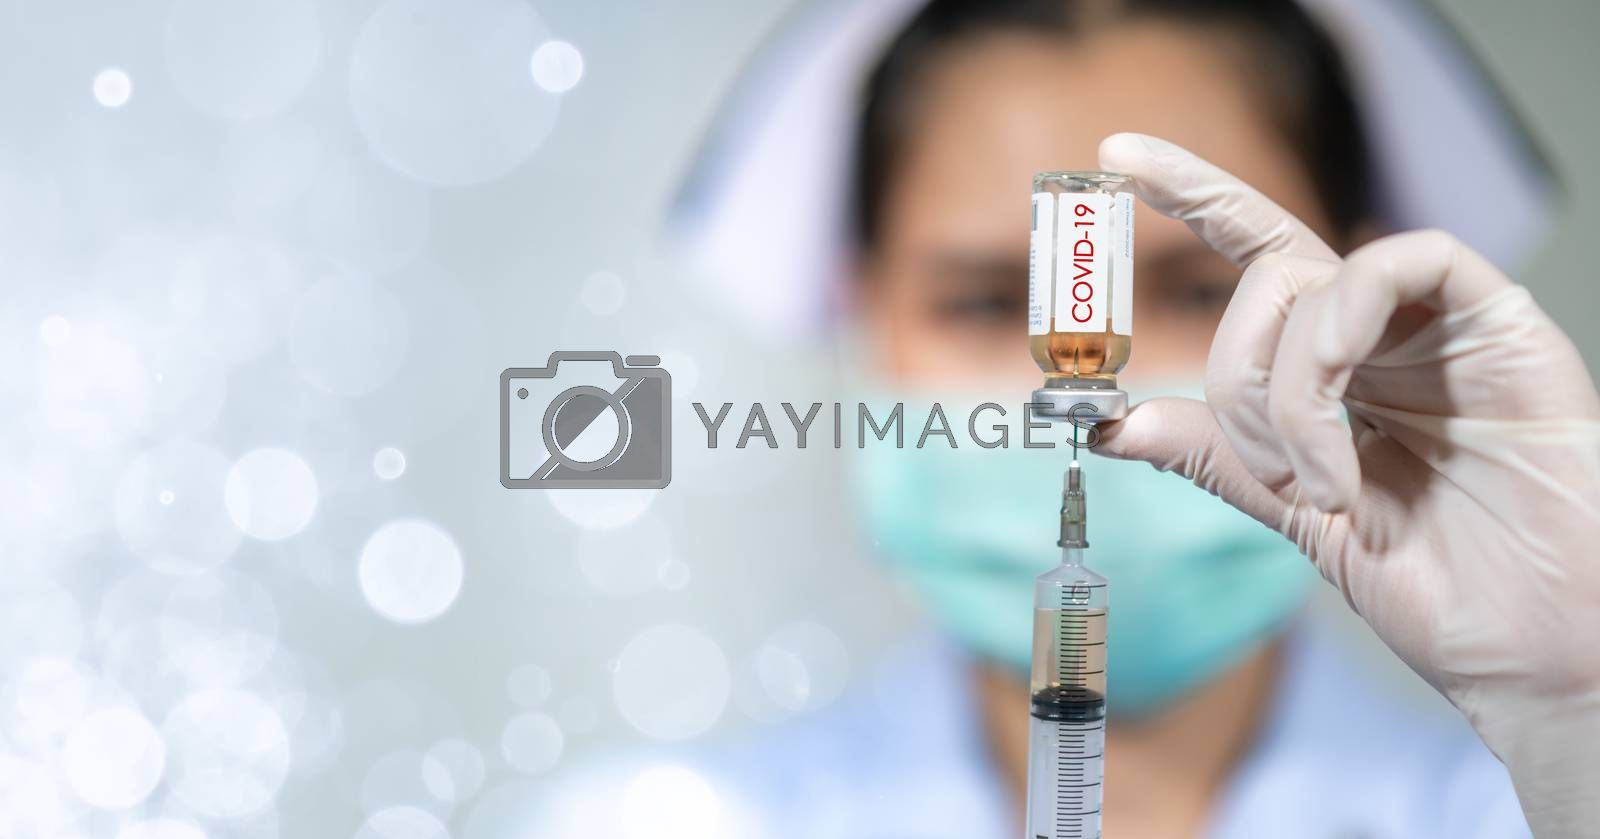 The doctor put on a mask and was injecting with coronavirus covid-19.